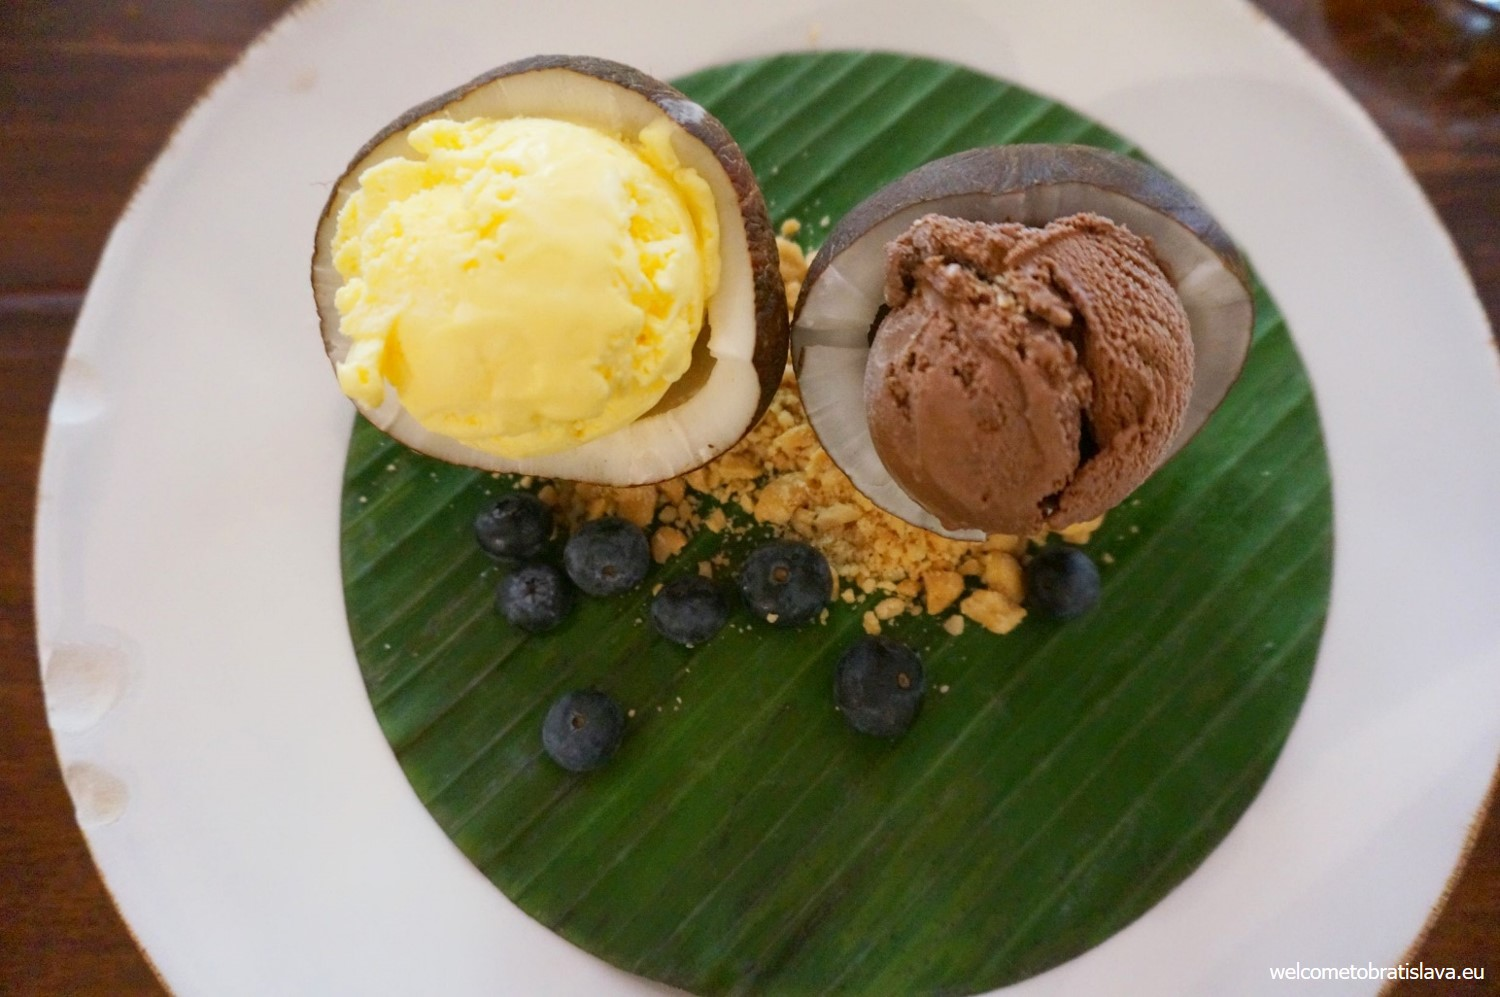 Ice cream with fresh fruit served in coconut halves